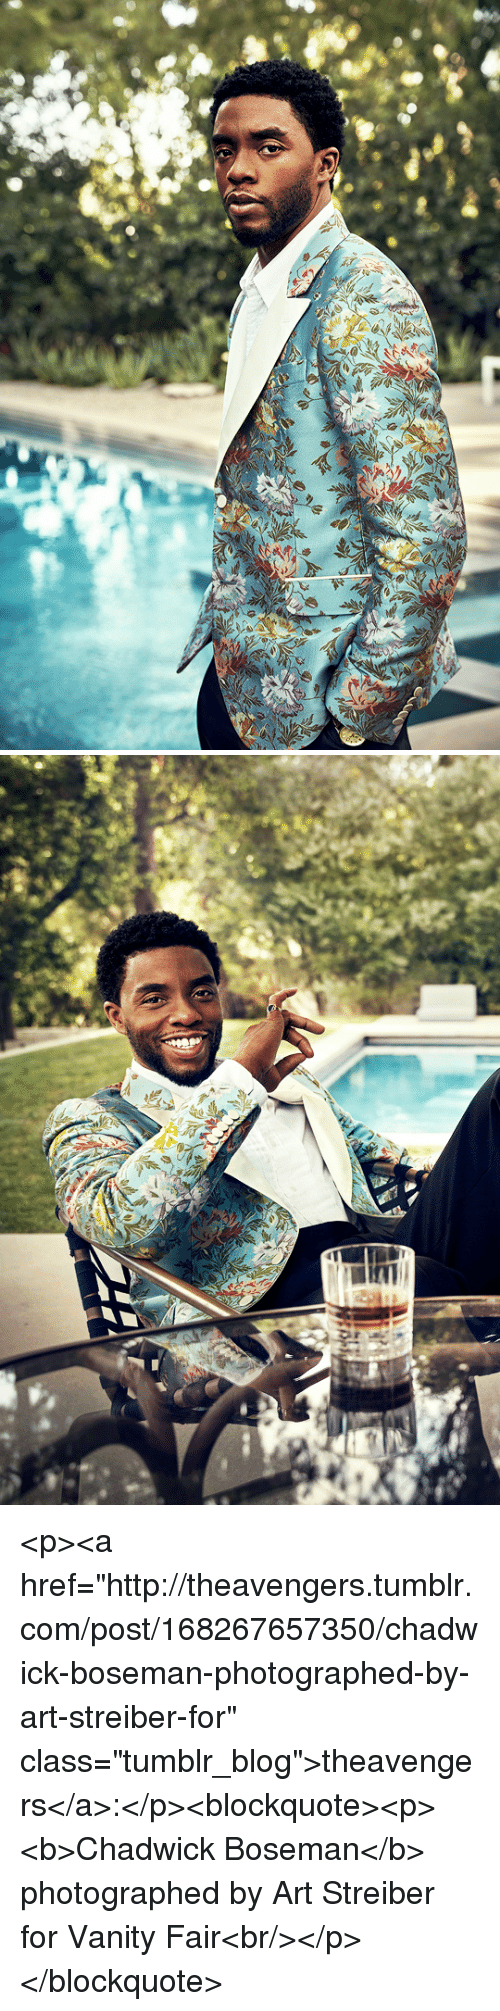 "vanity fair: <p><a href=""http://theavengers.tumblr.com/post/168267657350/chadwick-boseman-photographed-by-art-streiber-for"" class=""tumblr_blog"">theavengers</a>:</p><blockquote><p><b>Chadwick Boseman</b> photographed by Art Streiber for Vanity Fair<br/></p></blockquote>"